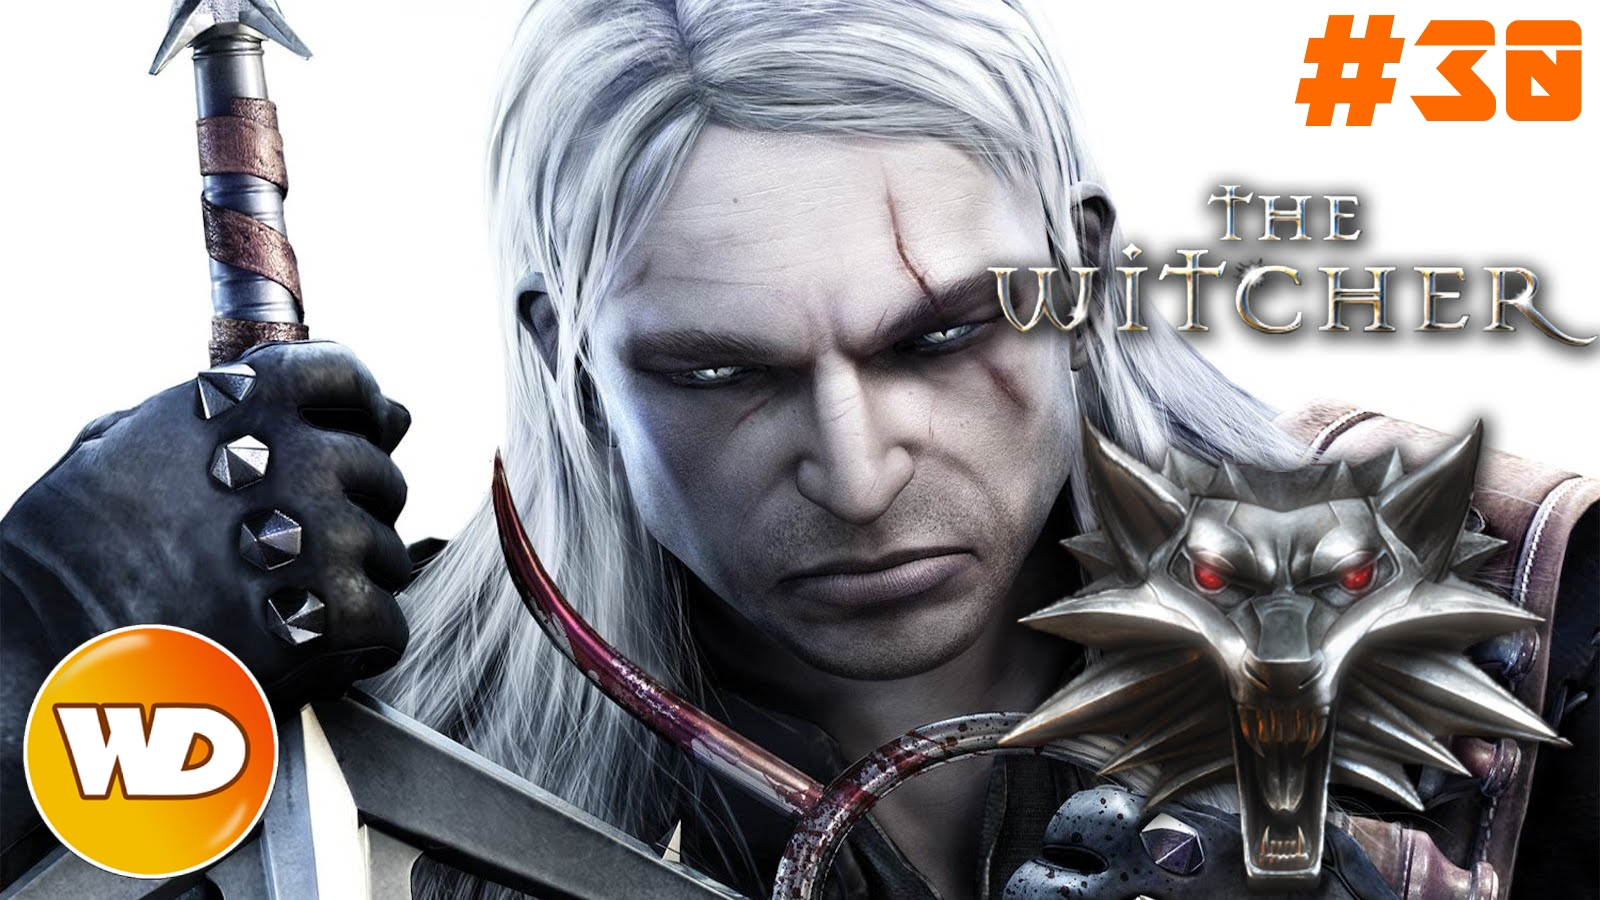 The Witcher 1 - épisode 30